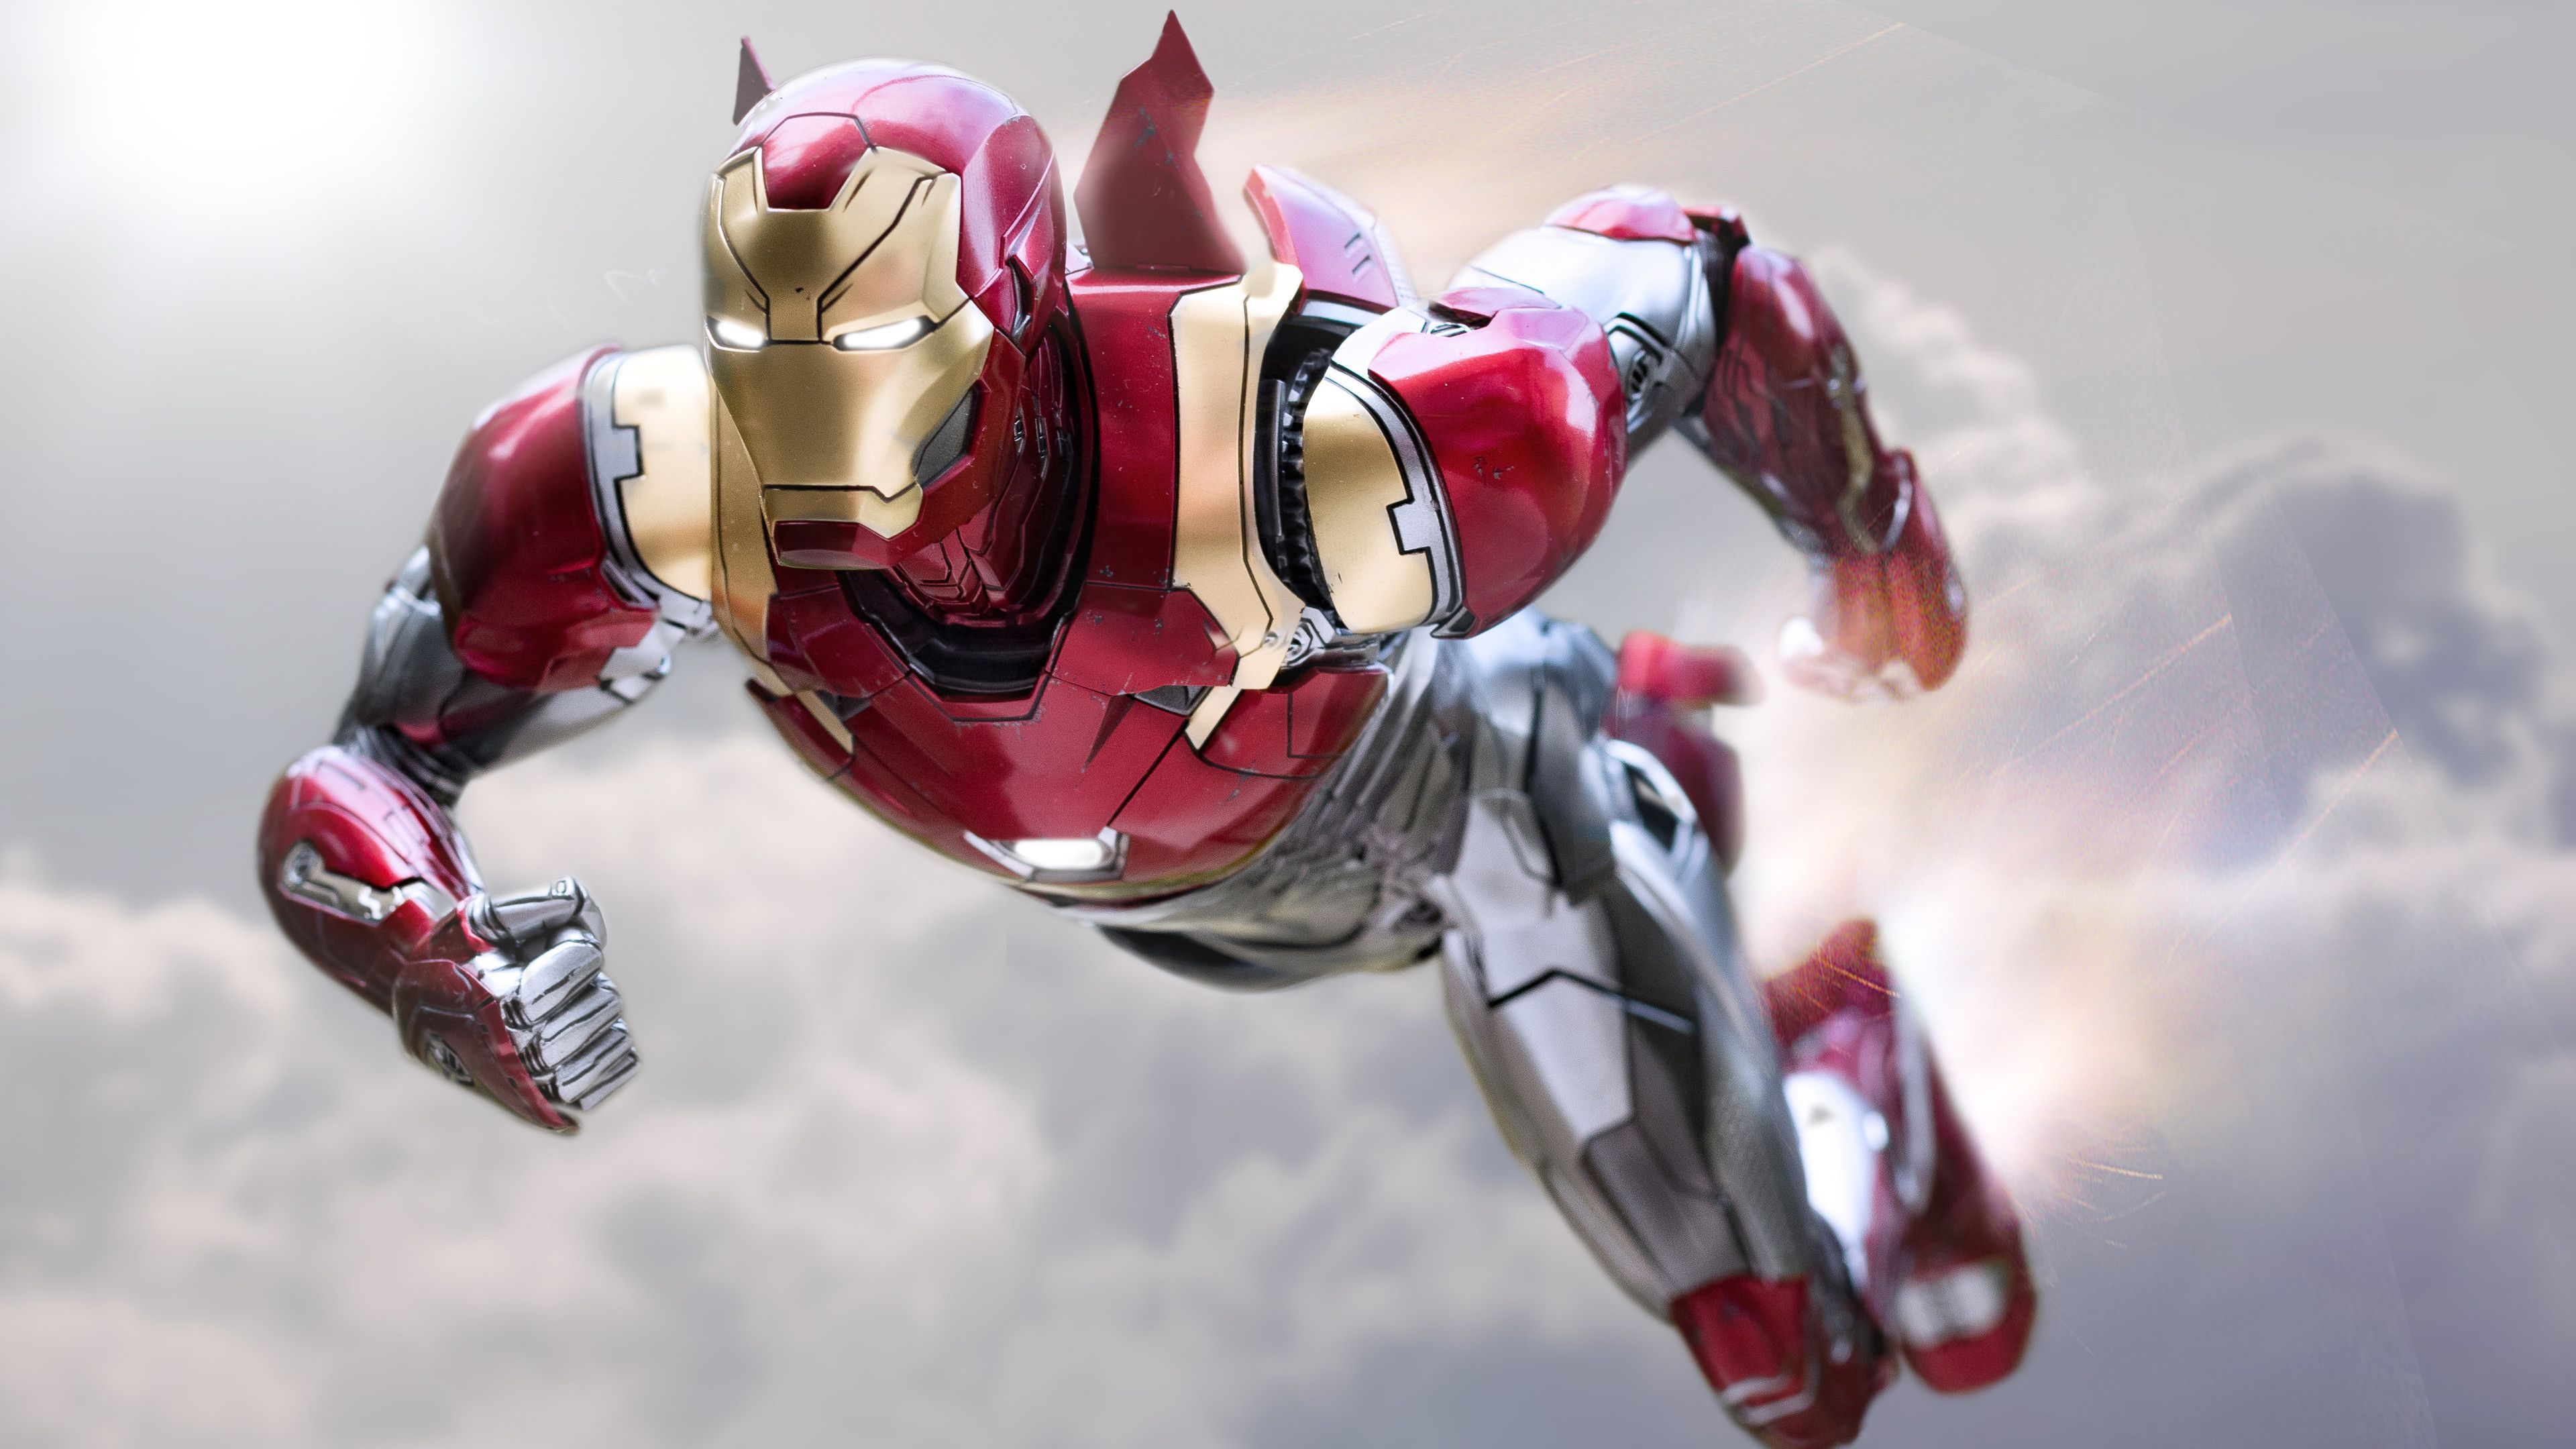 Iron Man 4k New Superheroes Wallpapers Iron Man Wallpapers Hd Wallpapers Digital Art Wallpapers Artwork Wallpap Iron Man Flying Iron Man Armor Iron Man Art